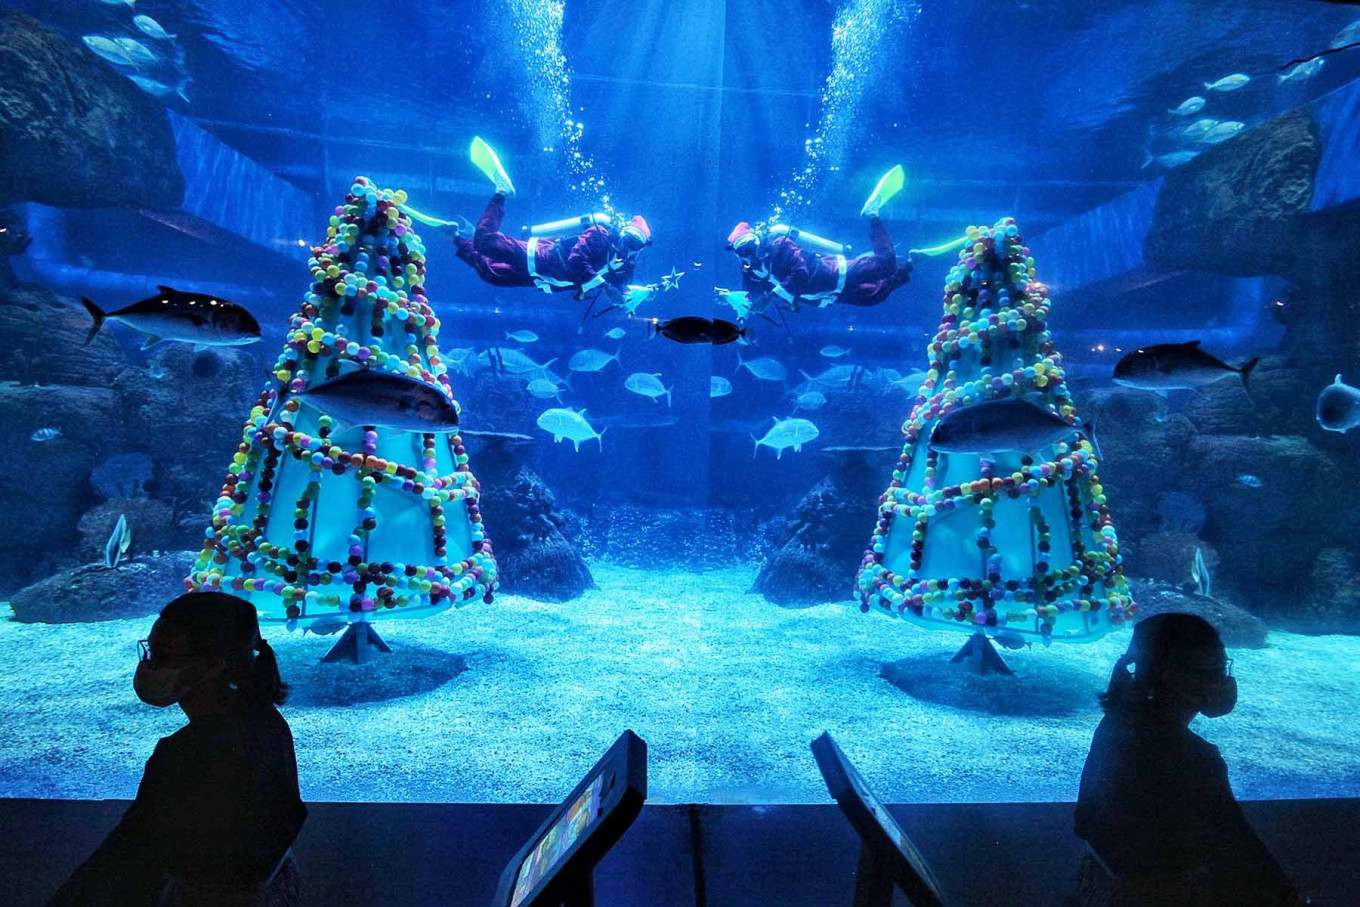 Visitors look at a performance by divers in Santa Claus costumes at the Jakarta Aquarium and Safari, at Neo Soho Mall, in Grogol, West Jakarta on Dec. 22, 2020. Thousands of aquatic and terrestrial animals are on display at the tourist spot, which is open to the public under tight enforcement of health protocol. JP/Seto Wardhana